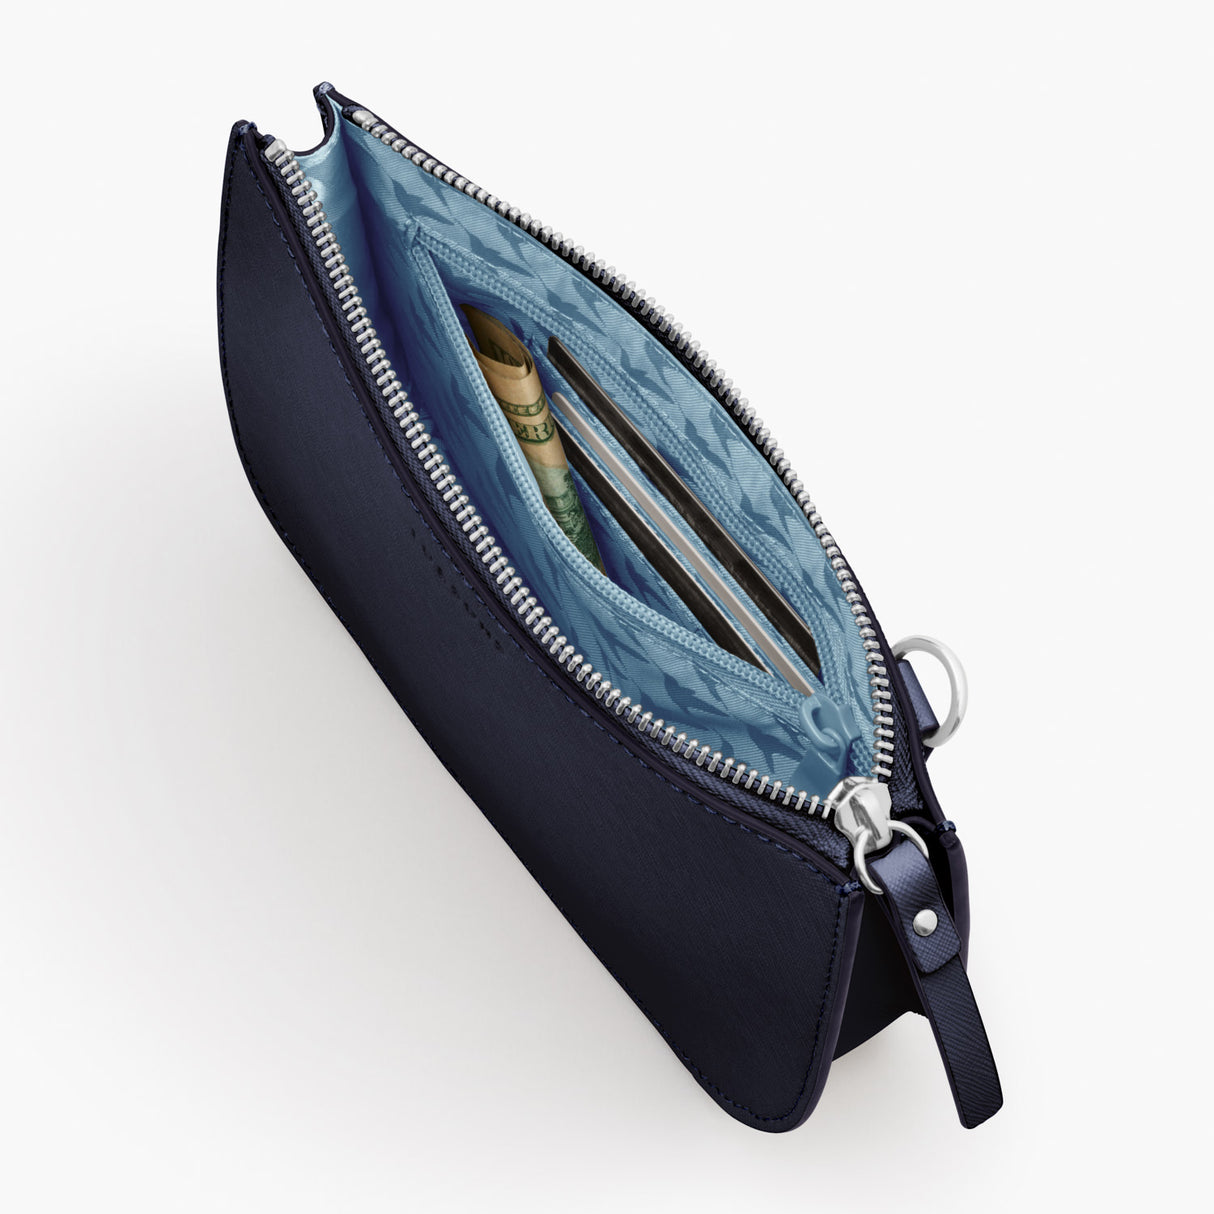 Interior Zipper Pocket - Waverley 2 - Saffiano Leather - Deep Navy / Silver / Azure - Crossbody Bag - Lo & Sons